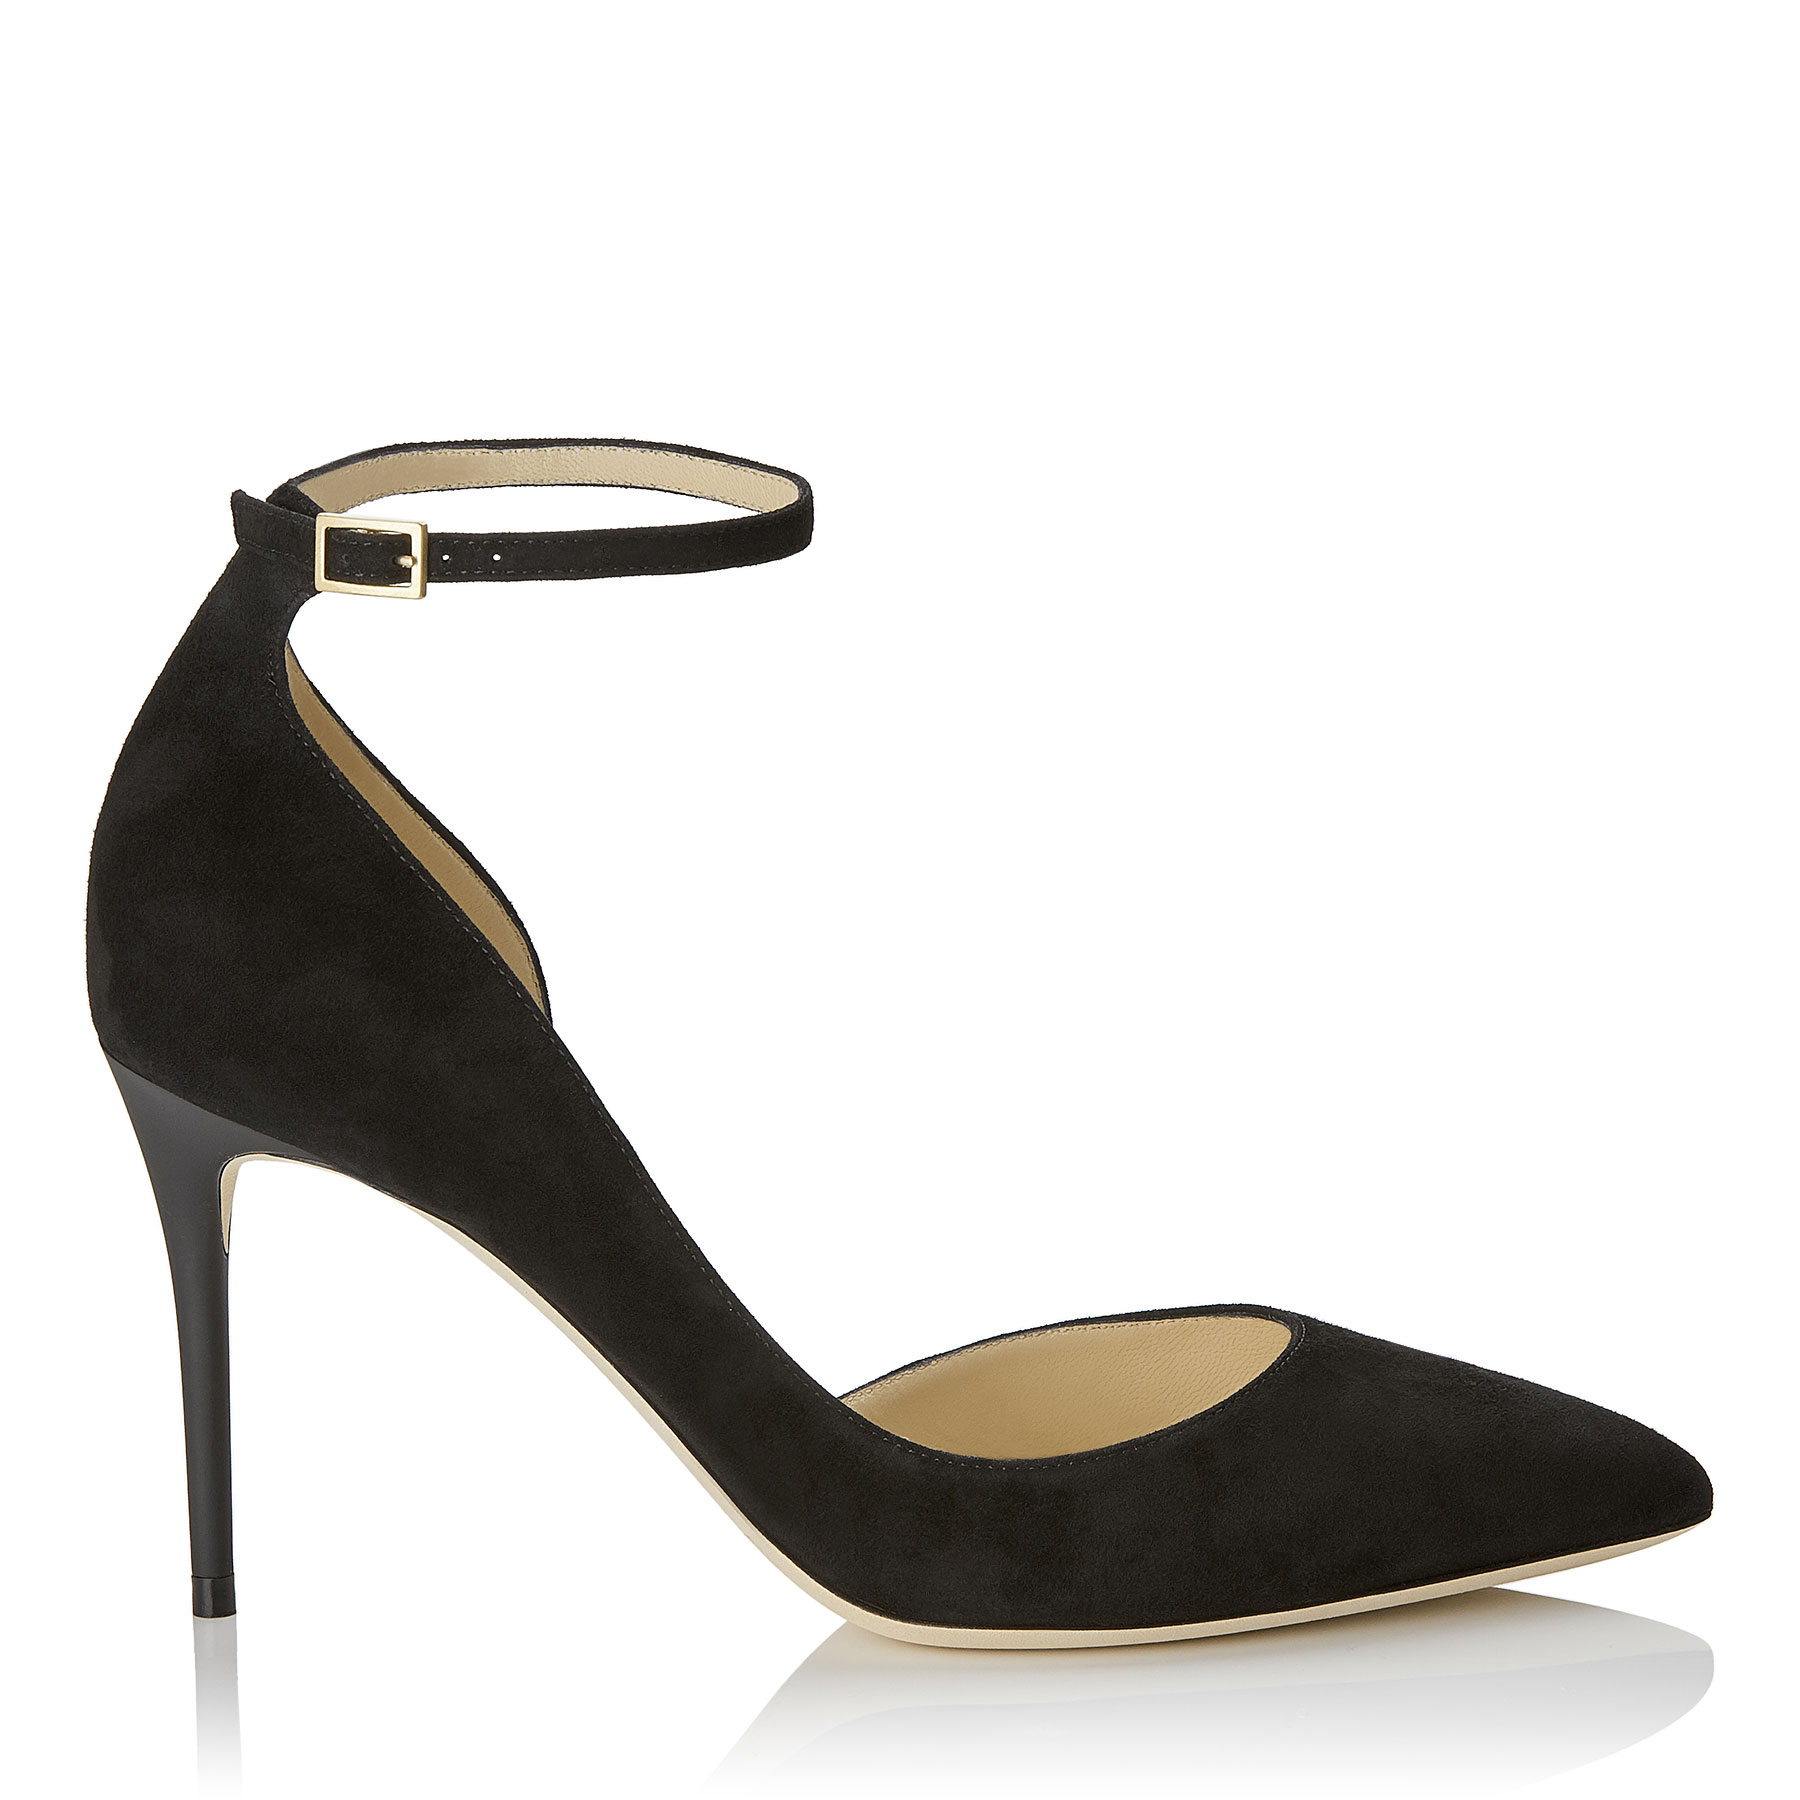 LUCY 85 Black Suede Pointy Toe Pumps